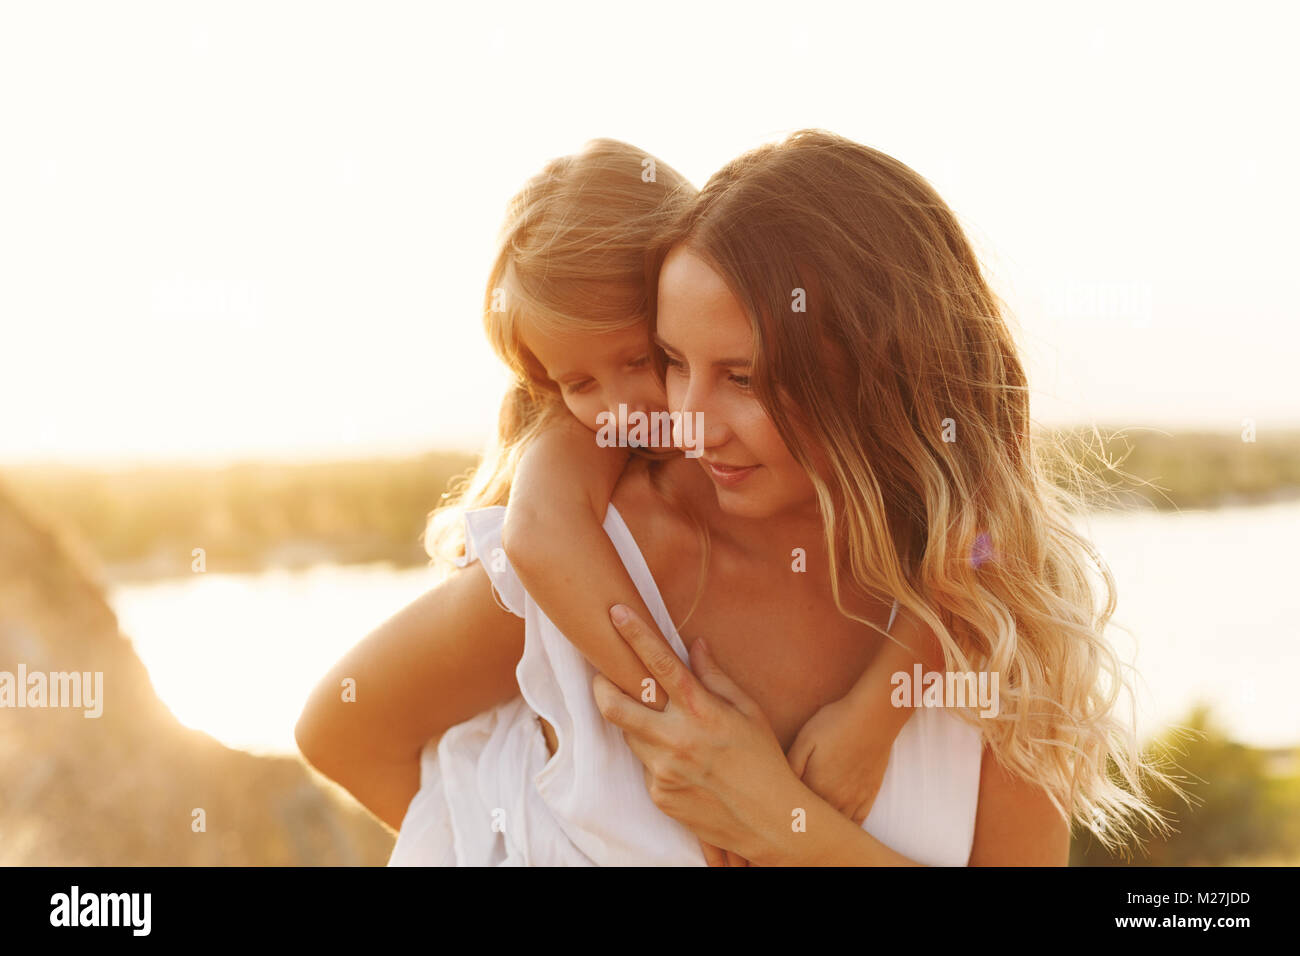 Family, mother and daughter on the river bank. A girl carries her daughter on her shoulders piggyback. Girls in - Stock Image